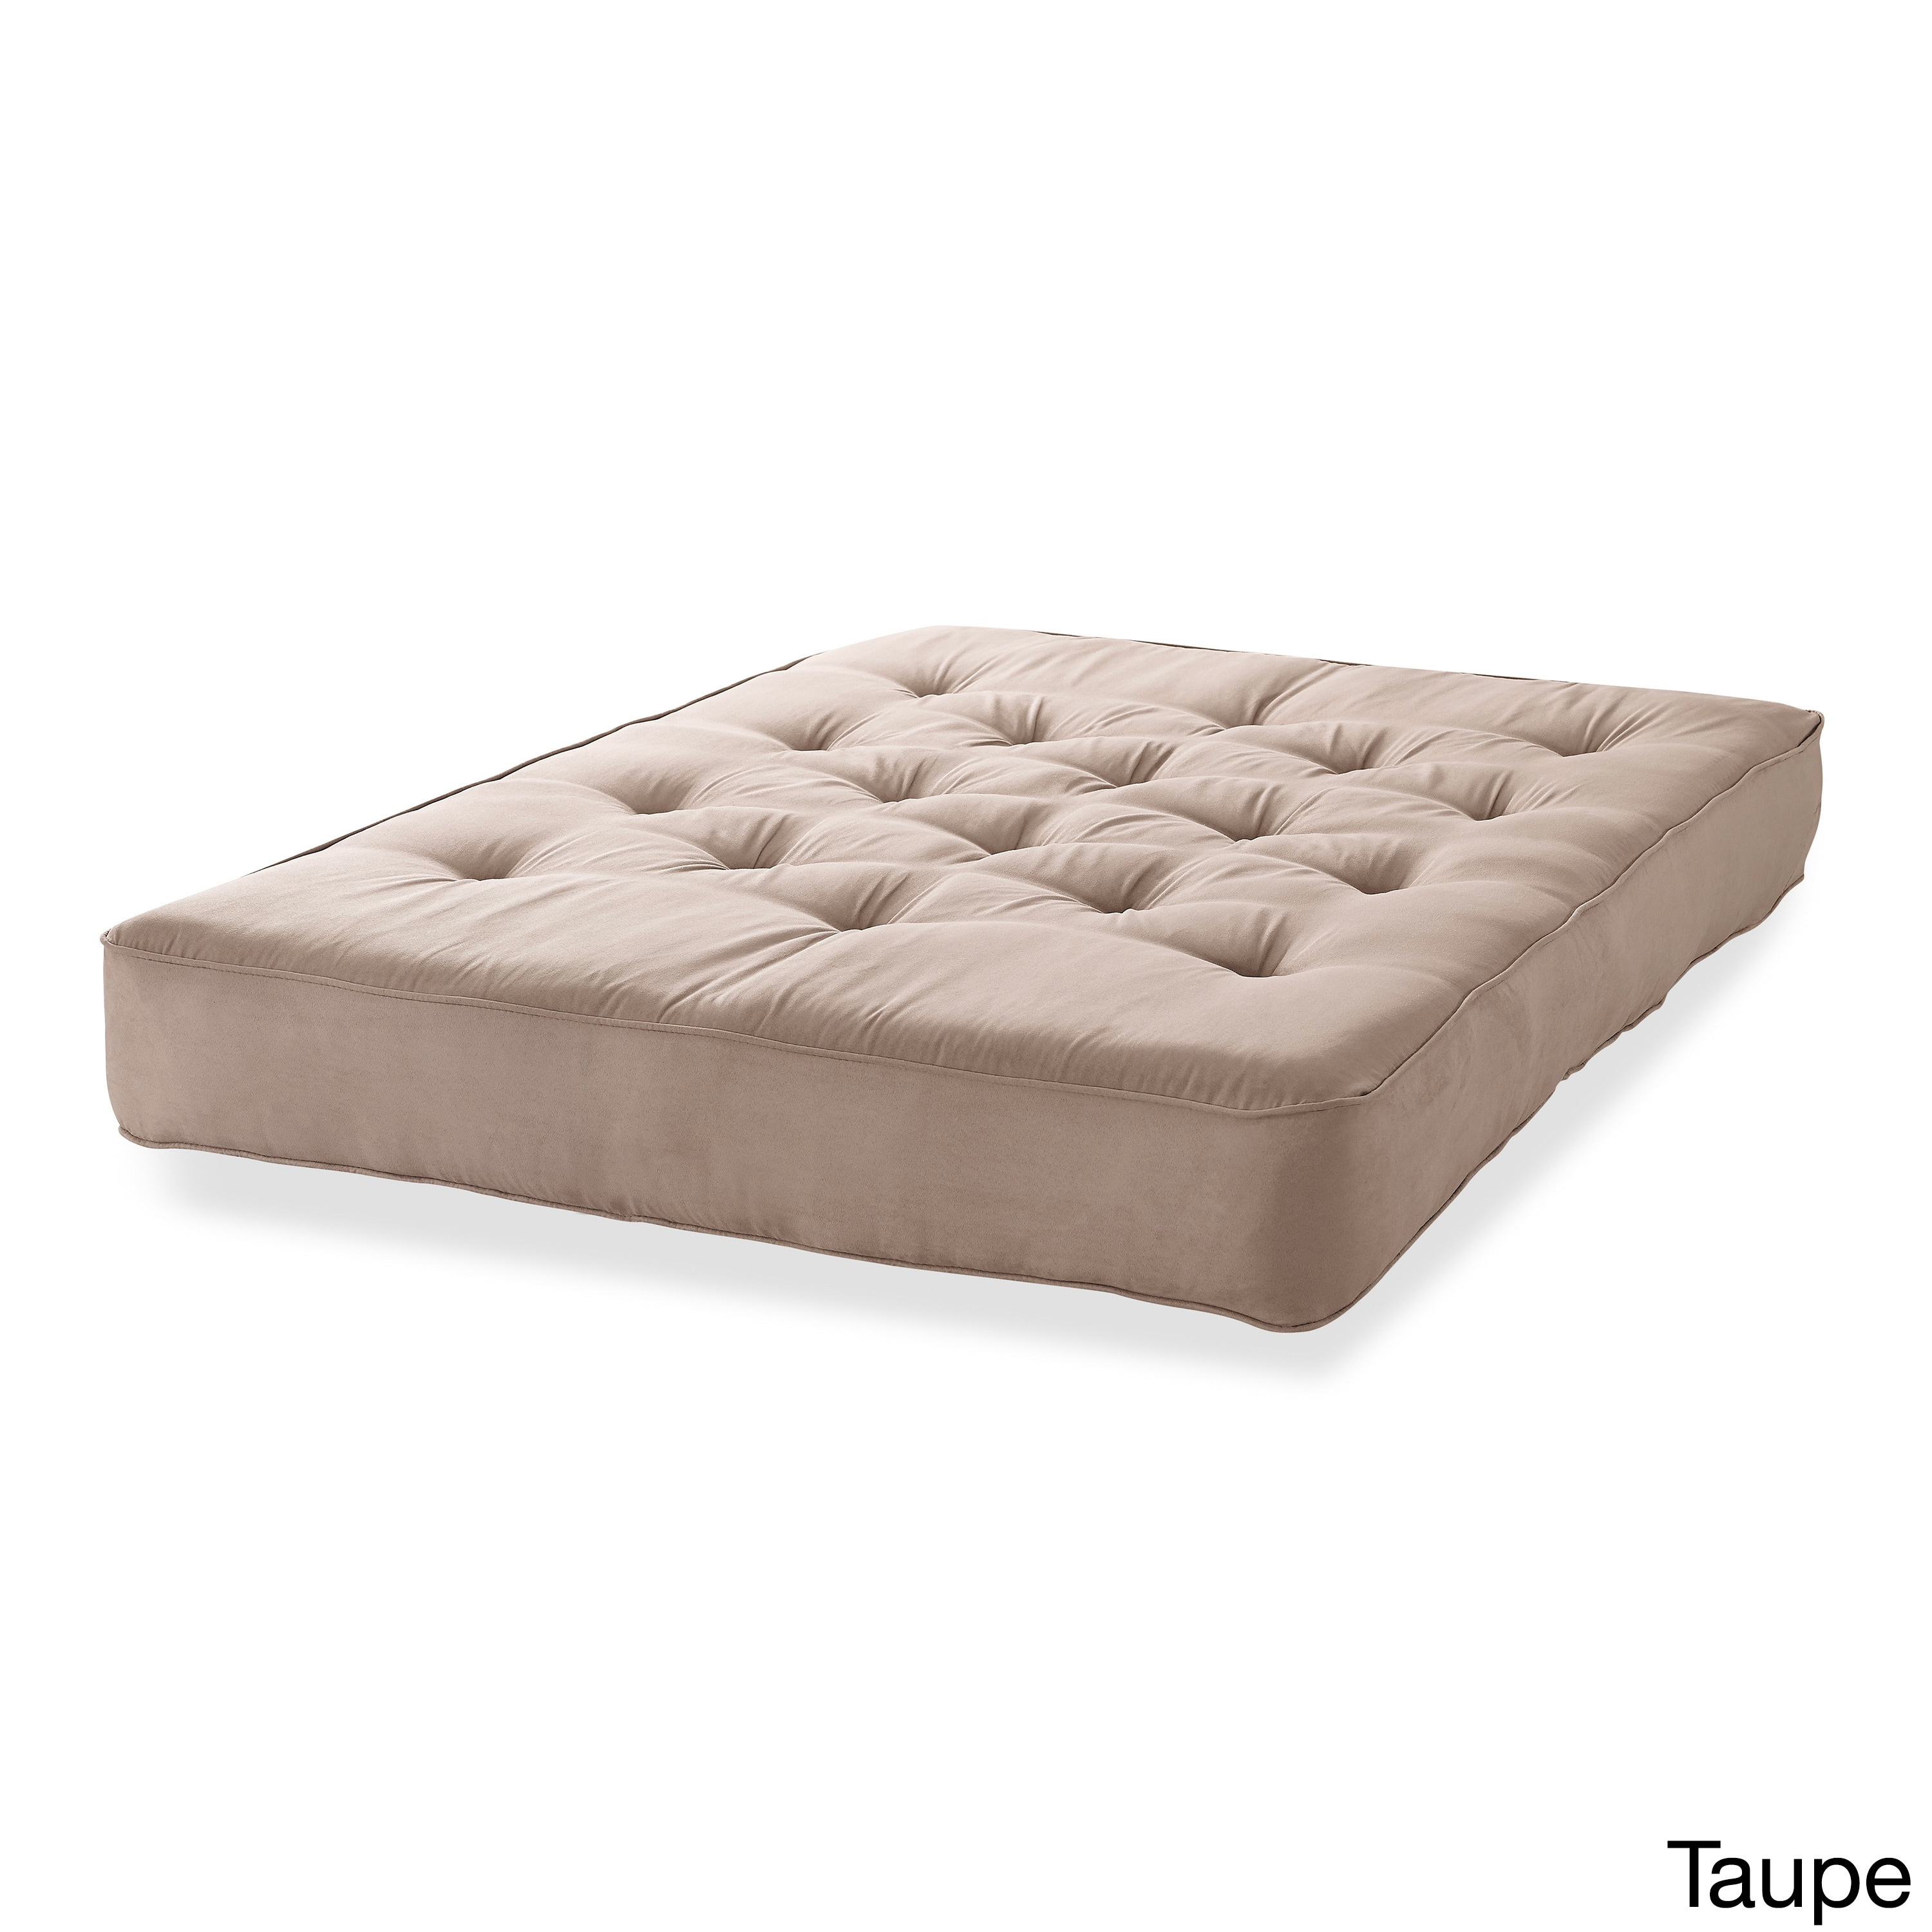 cotton twin certipur product foam serta chestnut overstock diablo cherry futon mattress free shipping dark arm and home today garden